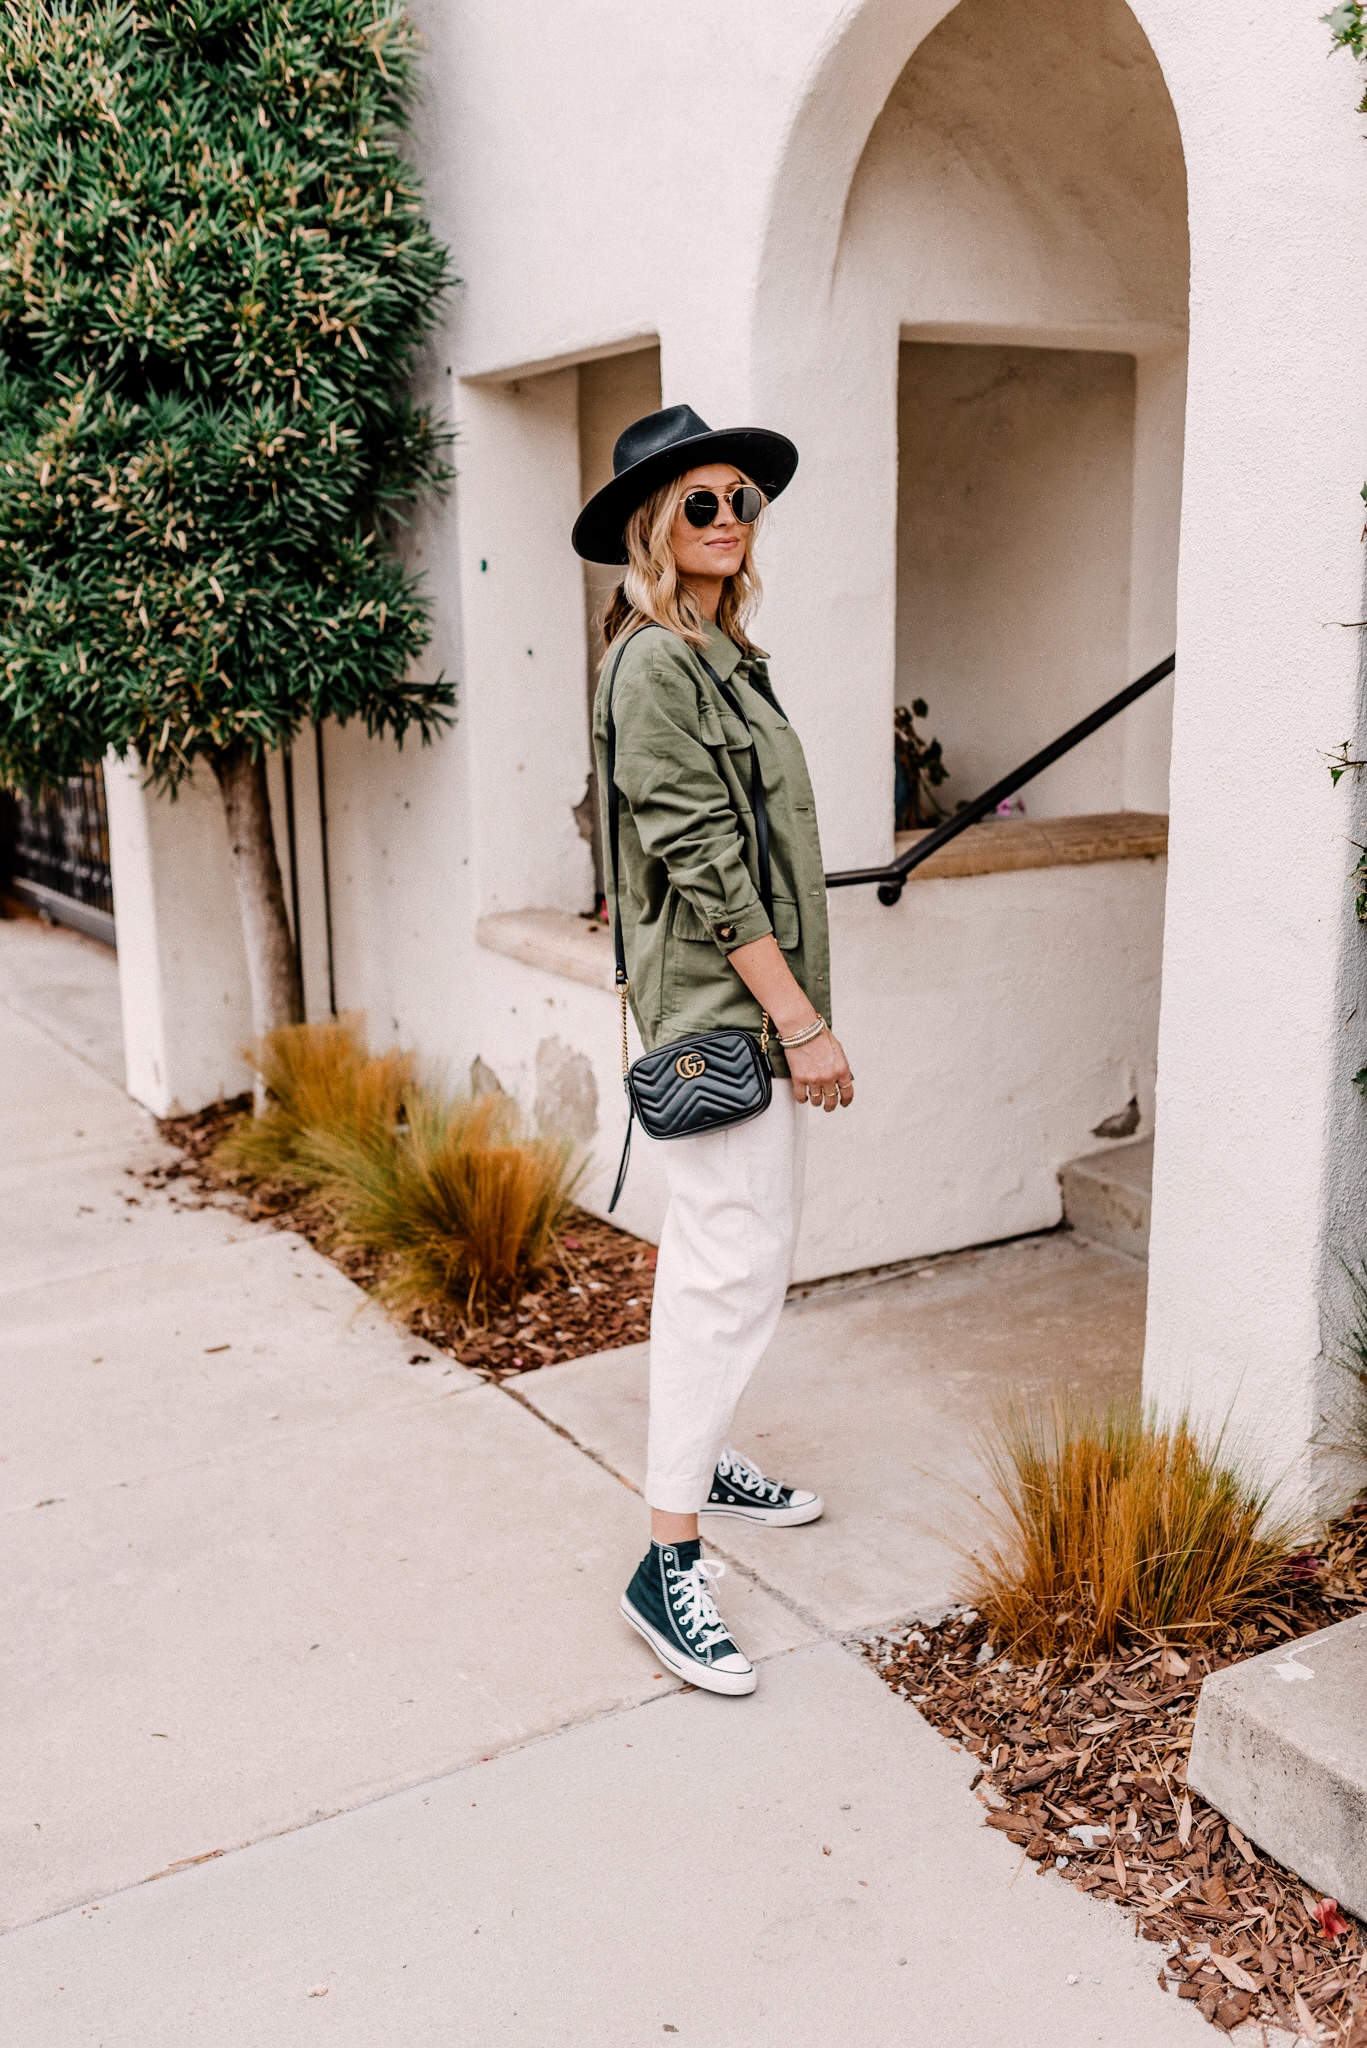 2 Ways To Style A Military Jacket - Camilla Thurman - Navy Grace |Military Jacket by popular San Diego fashion blog, Navy Grace: image of a woman wearing a military jacket, Ray-Ban sunglasses, canvas pants, black long sleeve t-shirt, black fedora hat, high top Converse sneakers, and Prada purse.